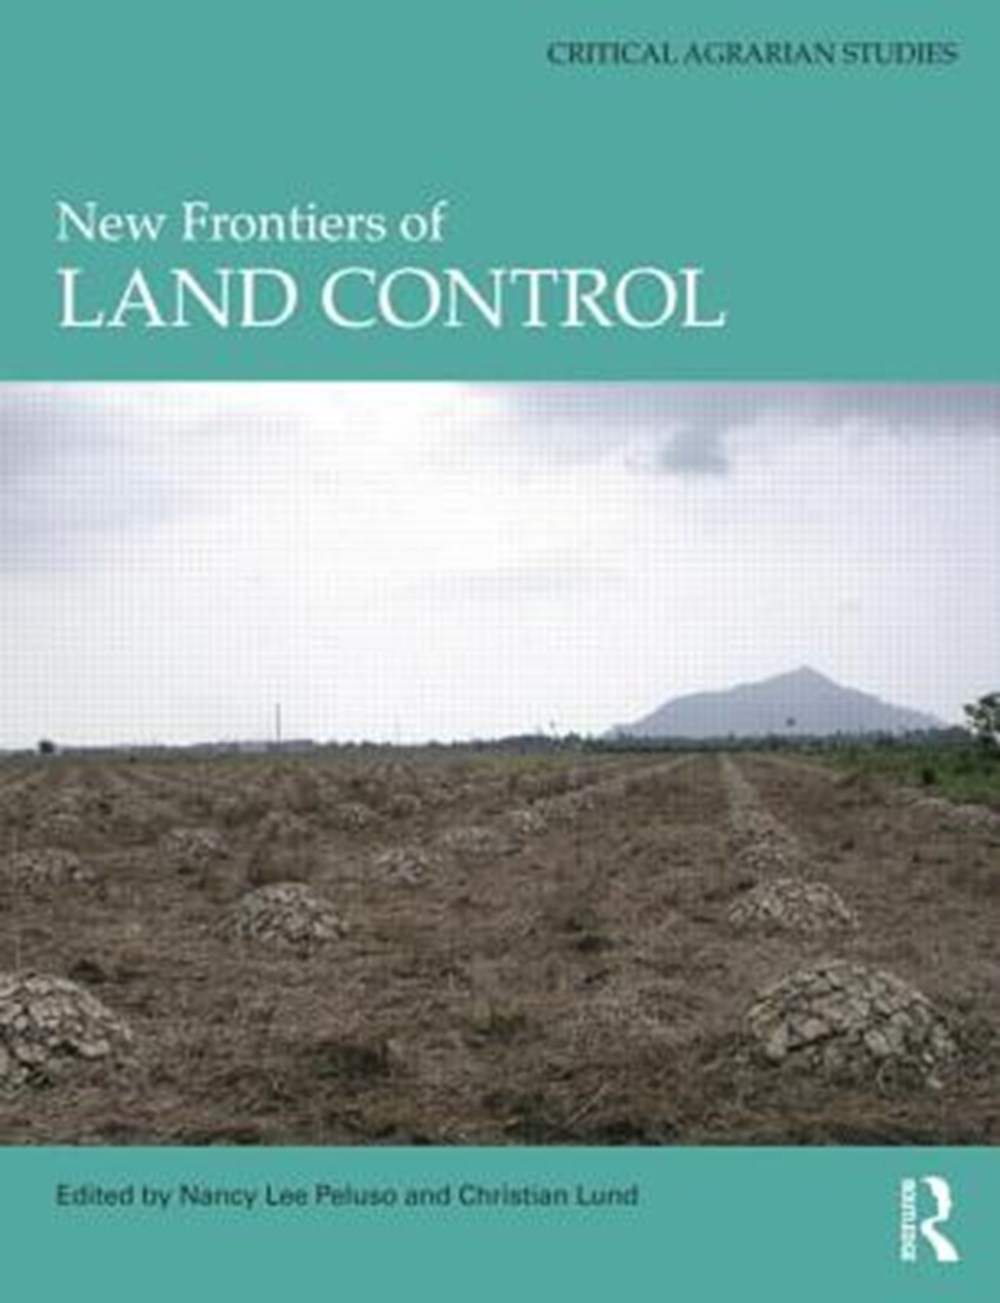 New Frontiers of Land Control